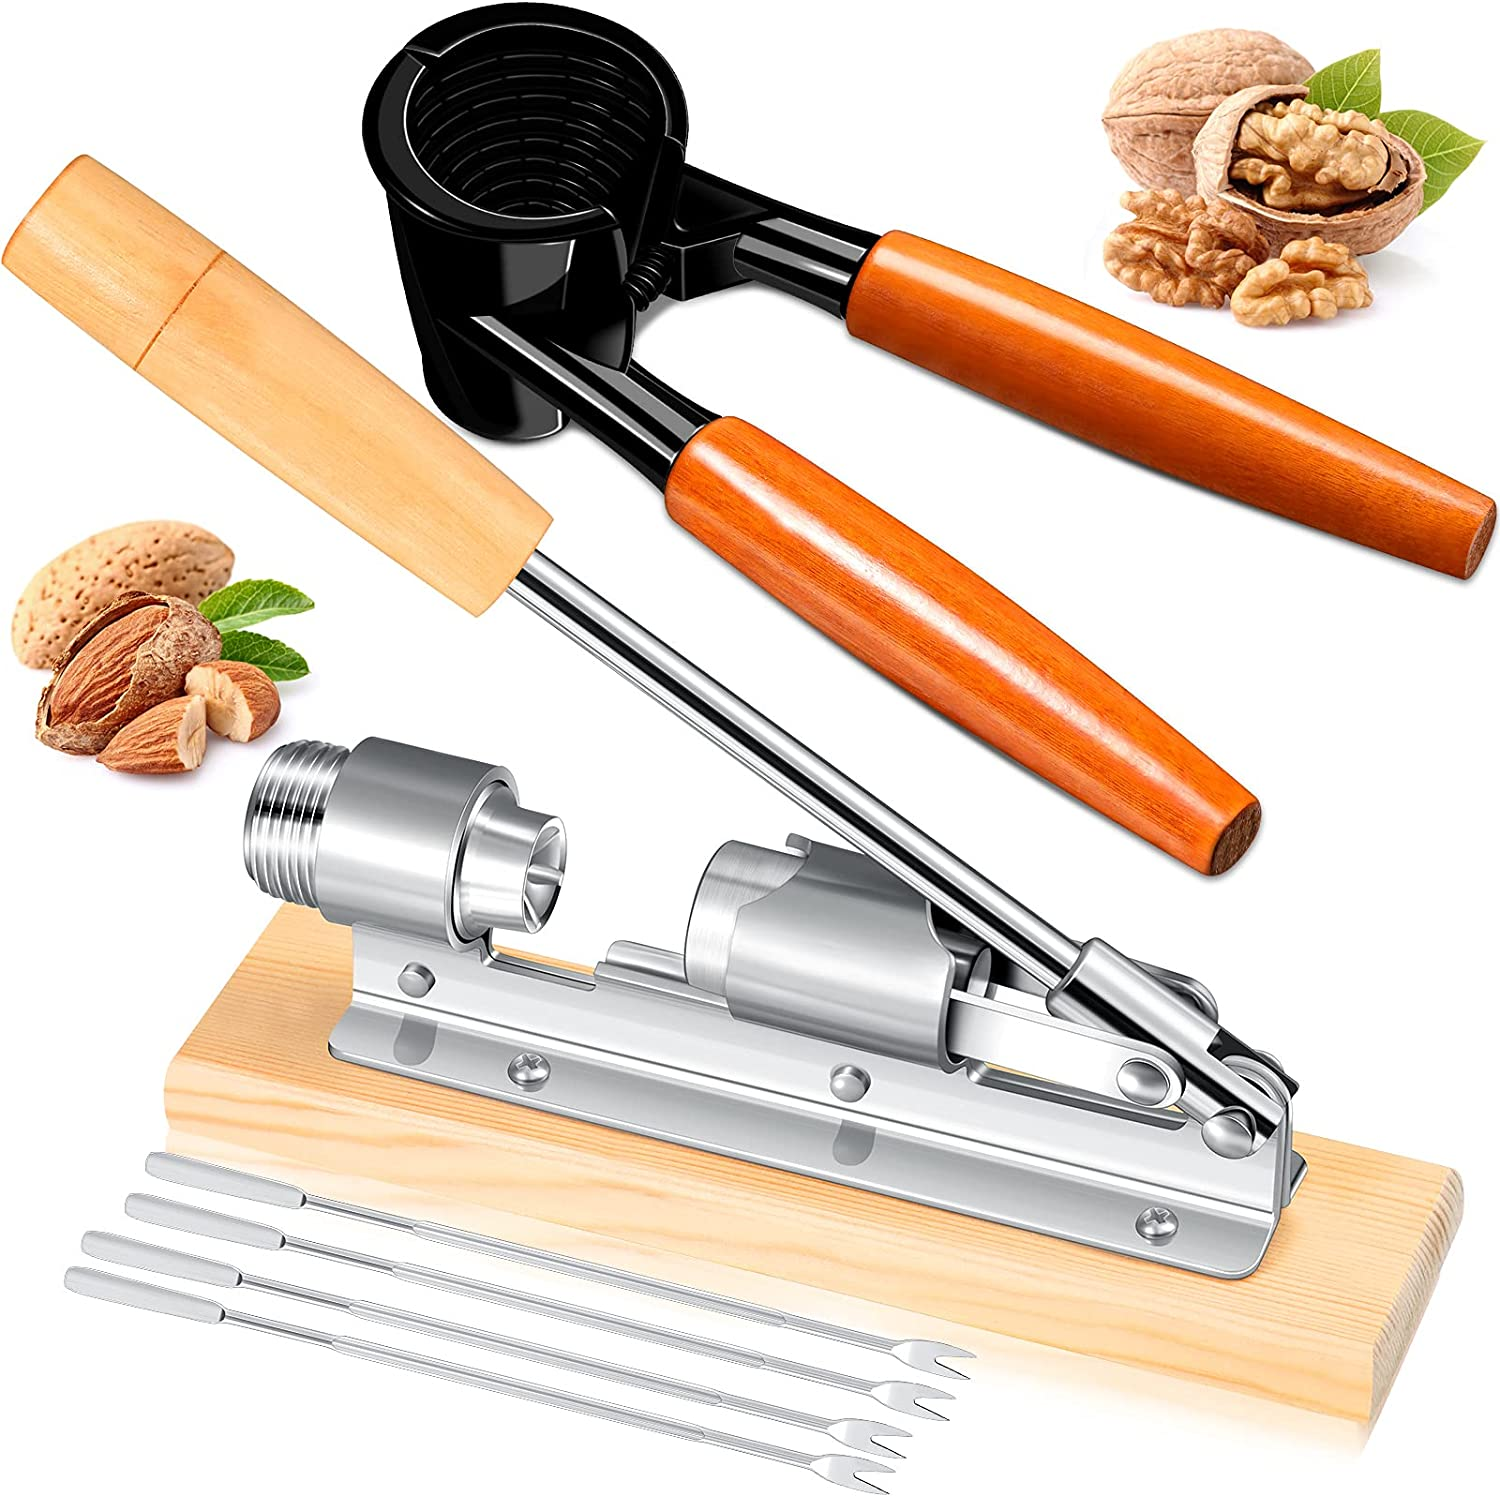 Benver 6 Pieces Nut Crackers Set Pecan Wood Handle Popular Shipping included brand Include